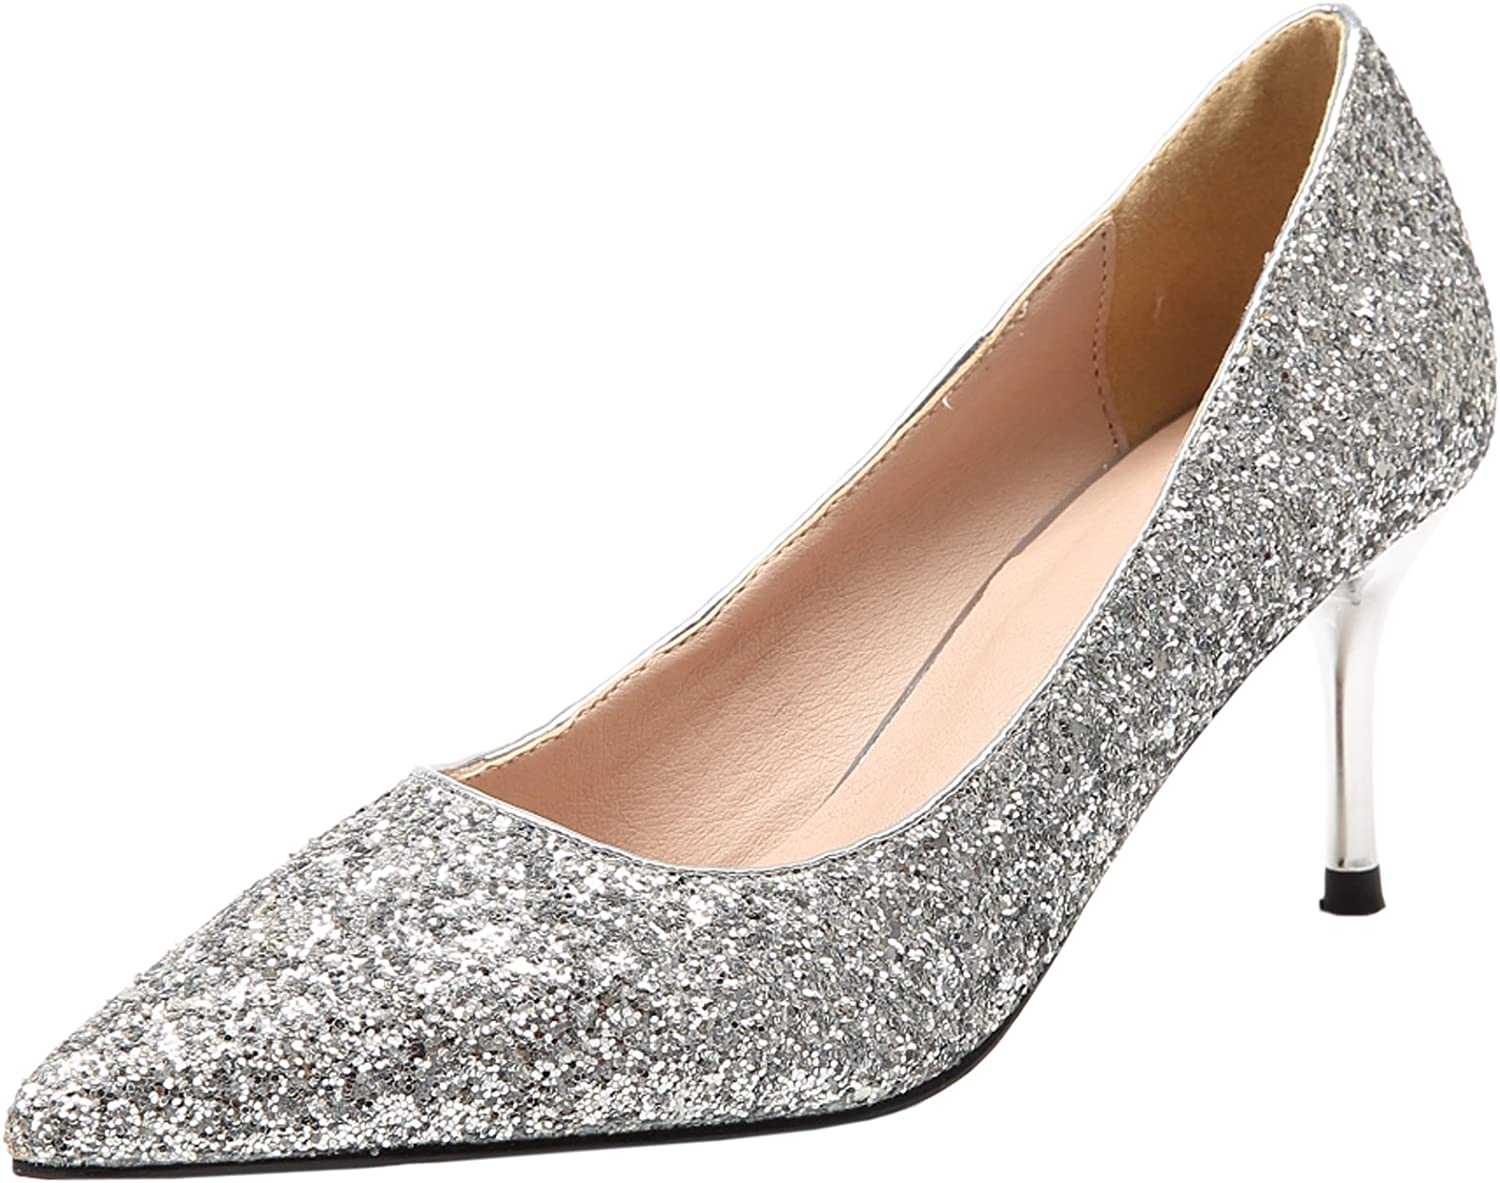 BIGTREE Wedding Pumps for Women Pointed Toe Bling Sequins Stiletto Dress Pumps